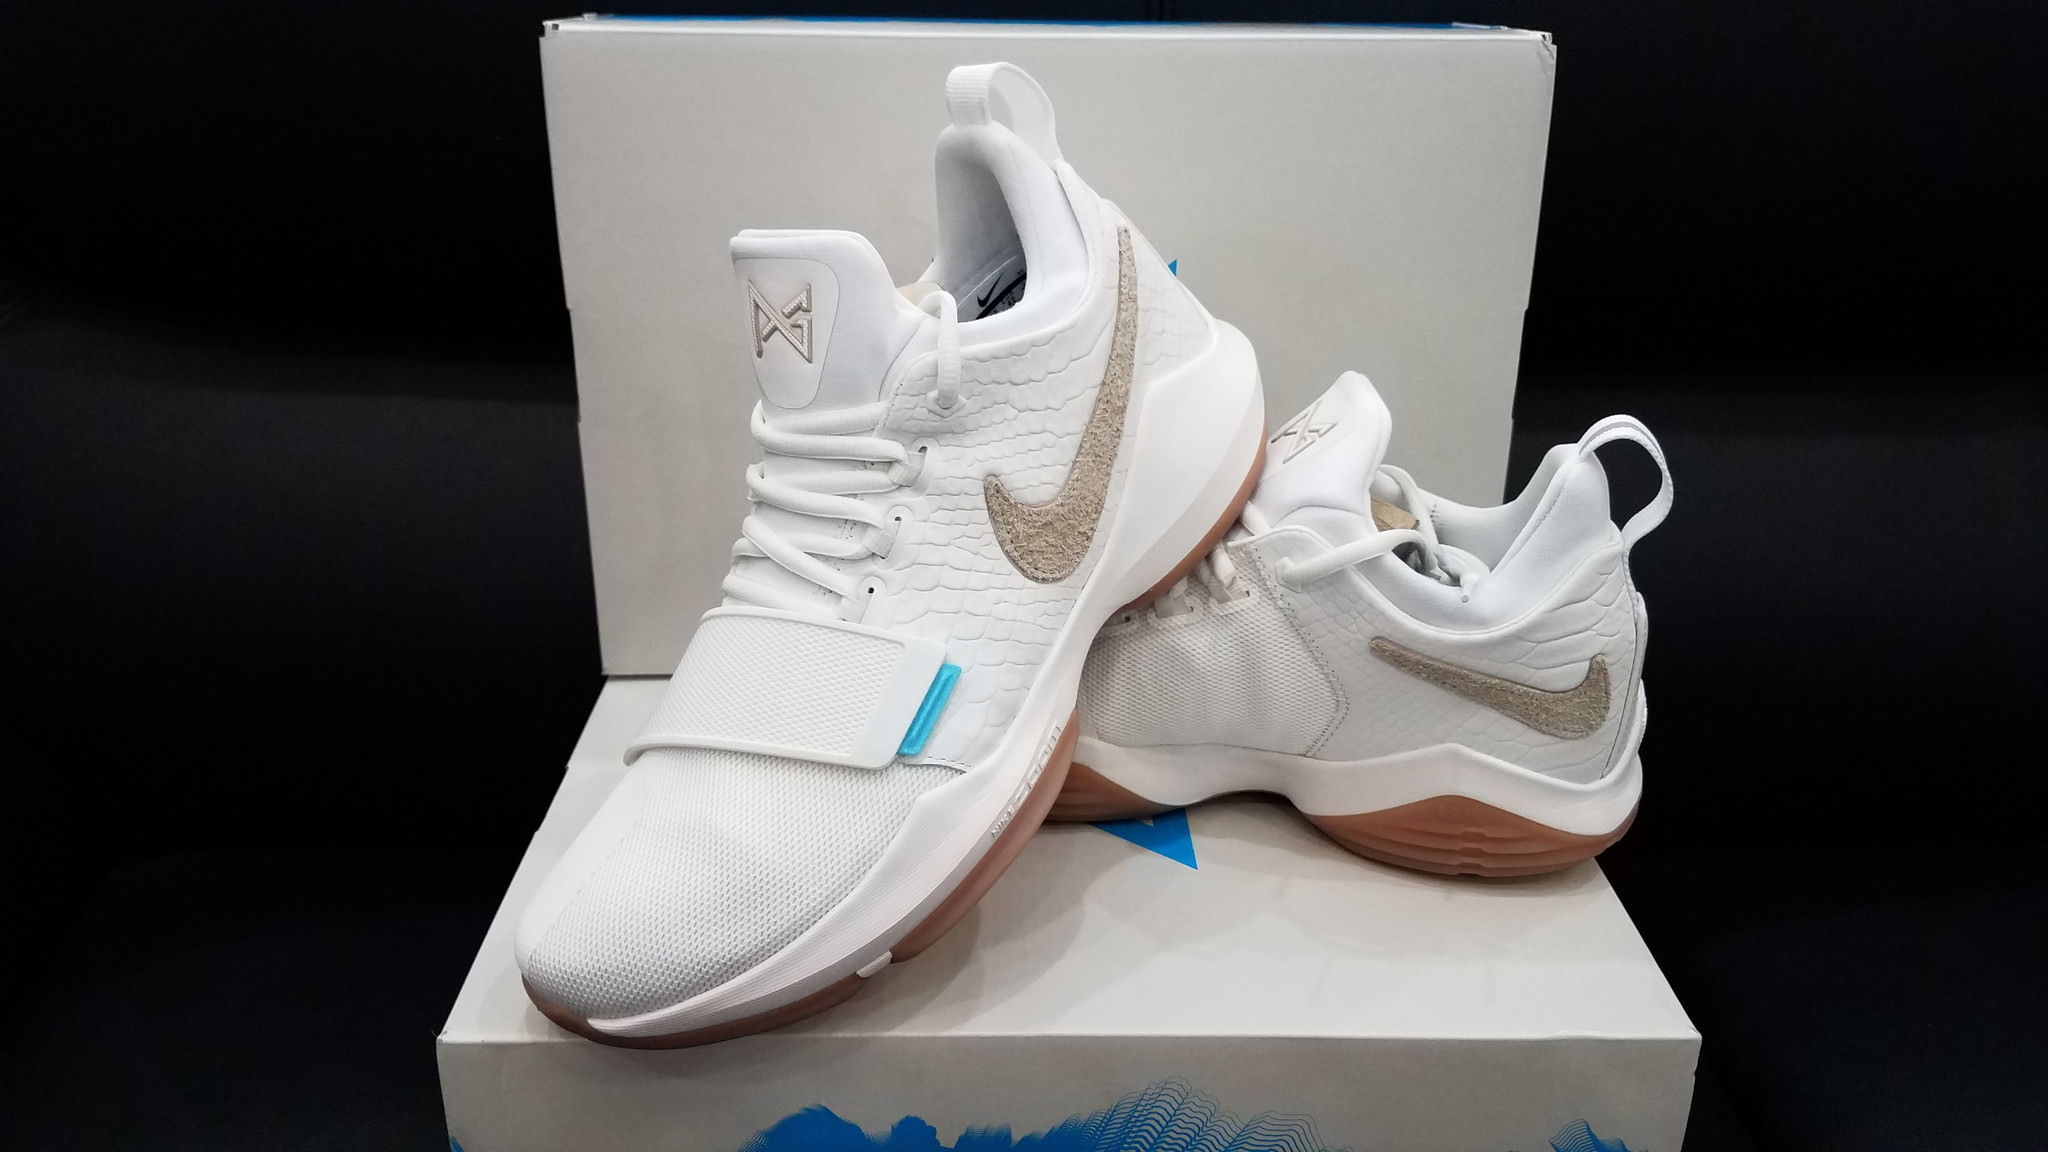 on sale 739b4 f9837 Nike PG 1 'Ivory' Expected to Launch on April 6 - WearTesters